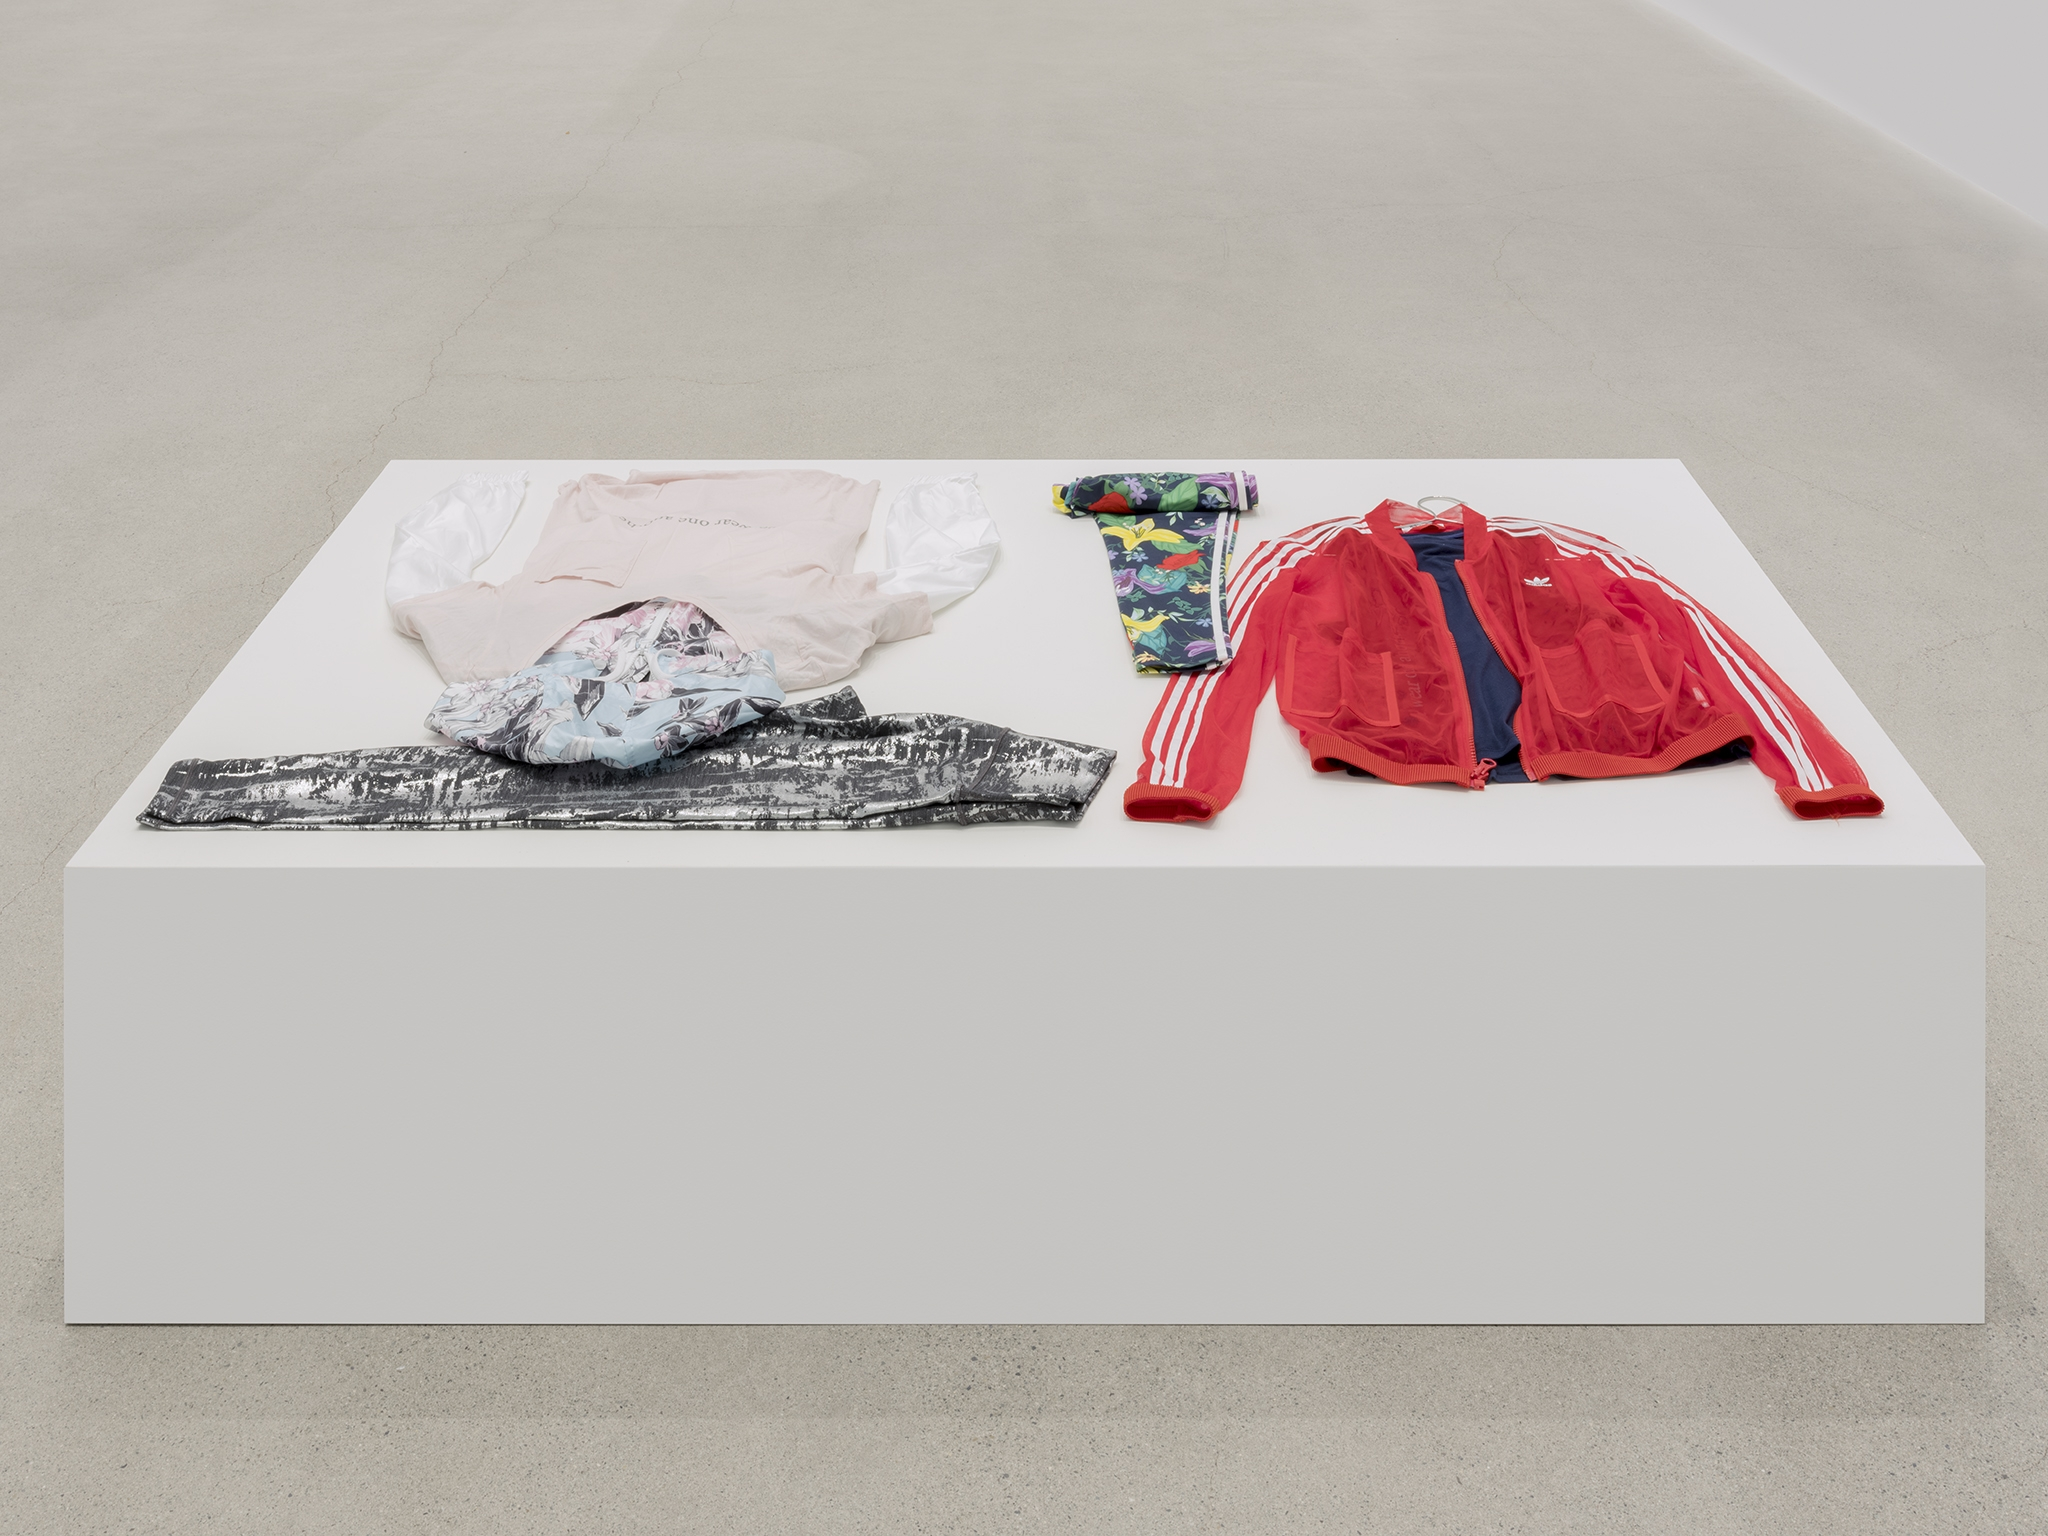 ​​Tanya Lukin Linklater, We wear one another, 2019, attire for performance, silkscreen, dimensions variable​ by